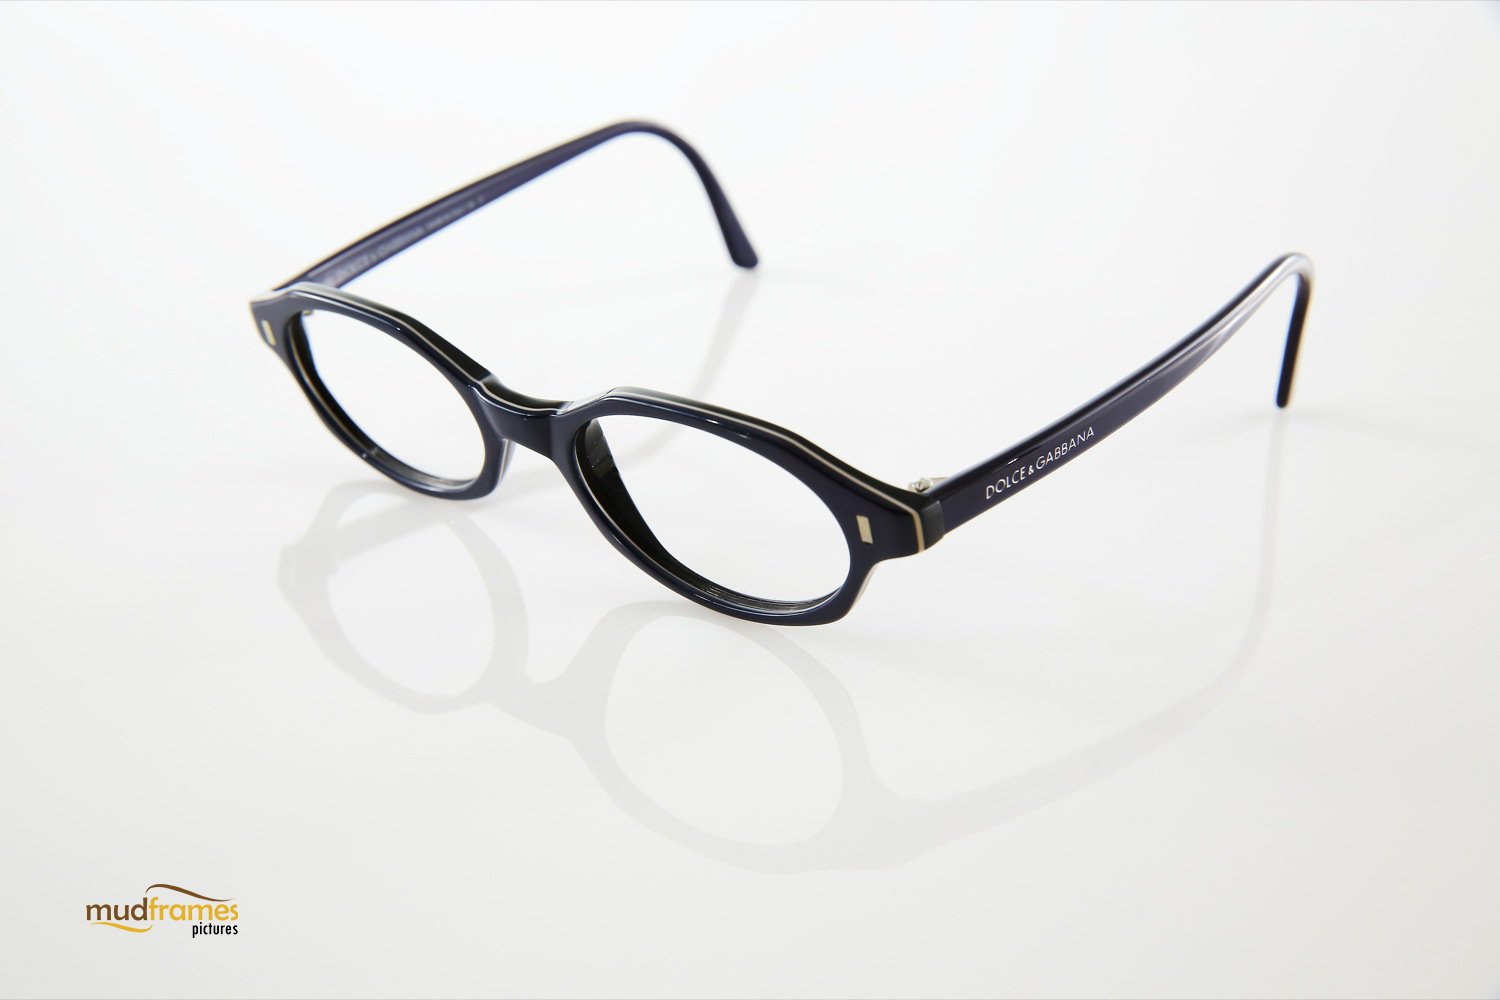 Dolce & Gabbana spectacles on white background